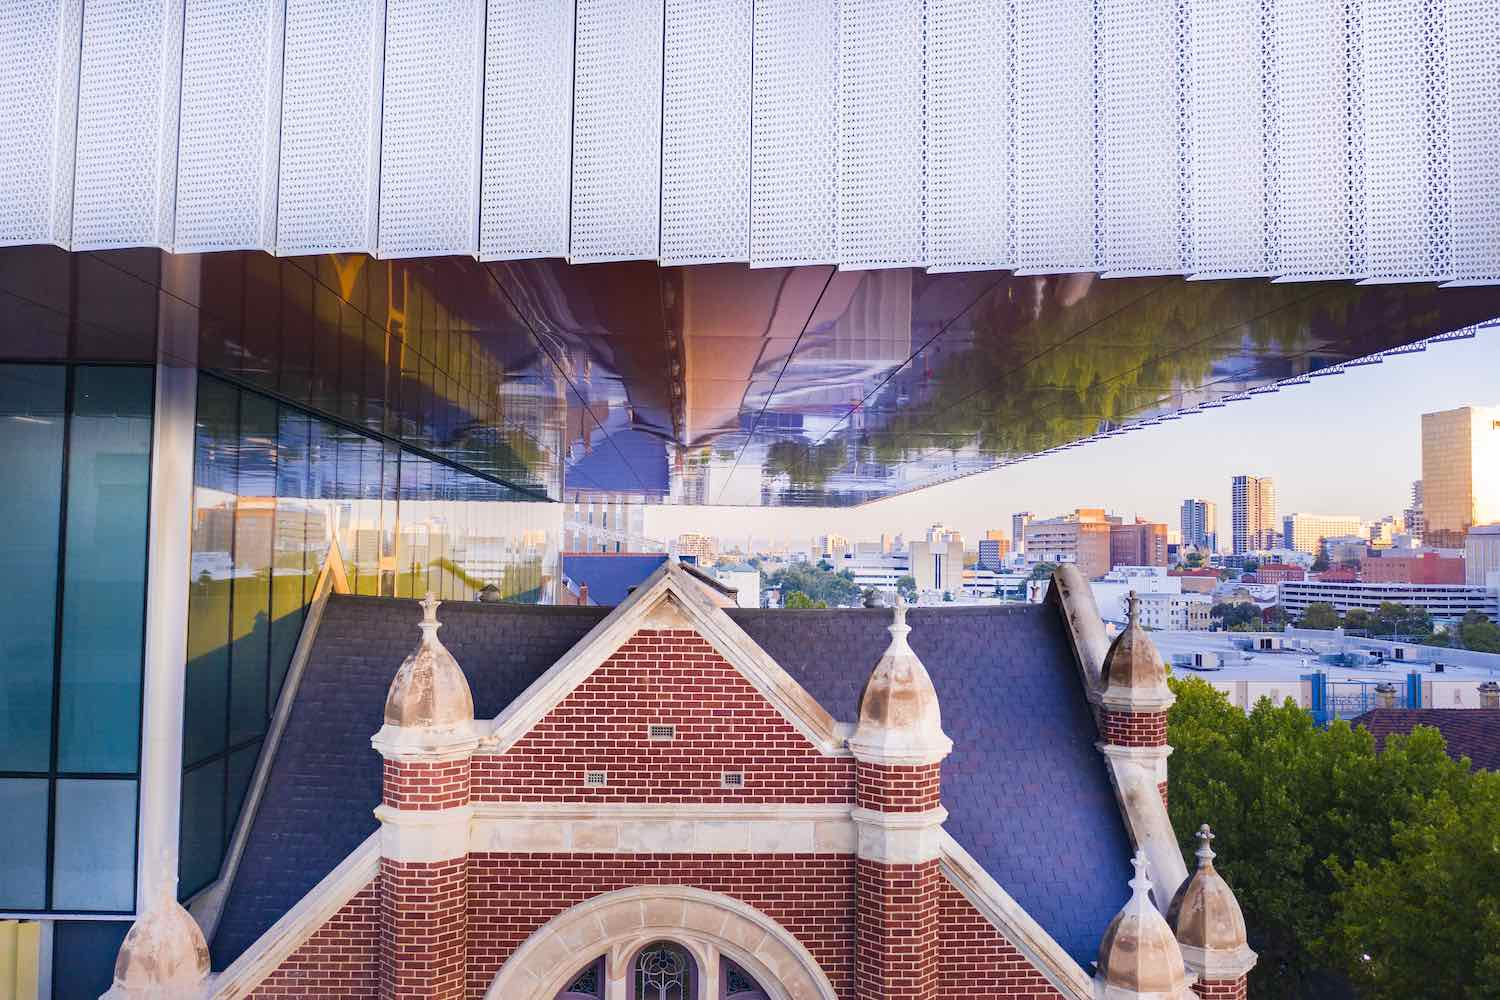 New Museum for Western Australian Museum. Hackett Hall and cenitlever - Photo by Michael Haluwana, Aeroture.